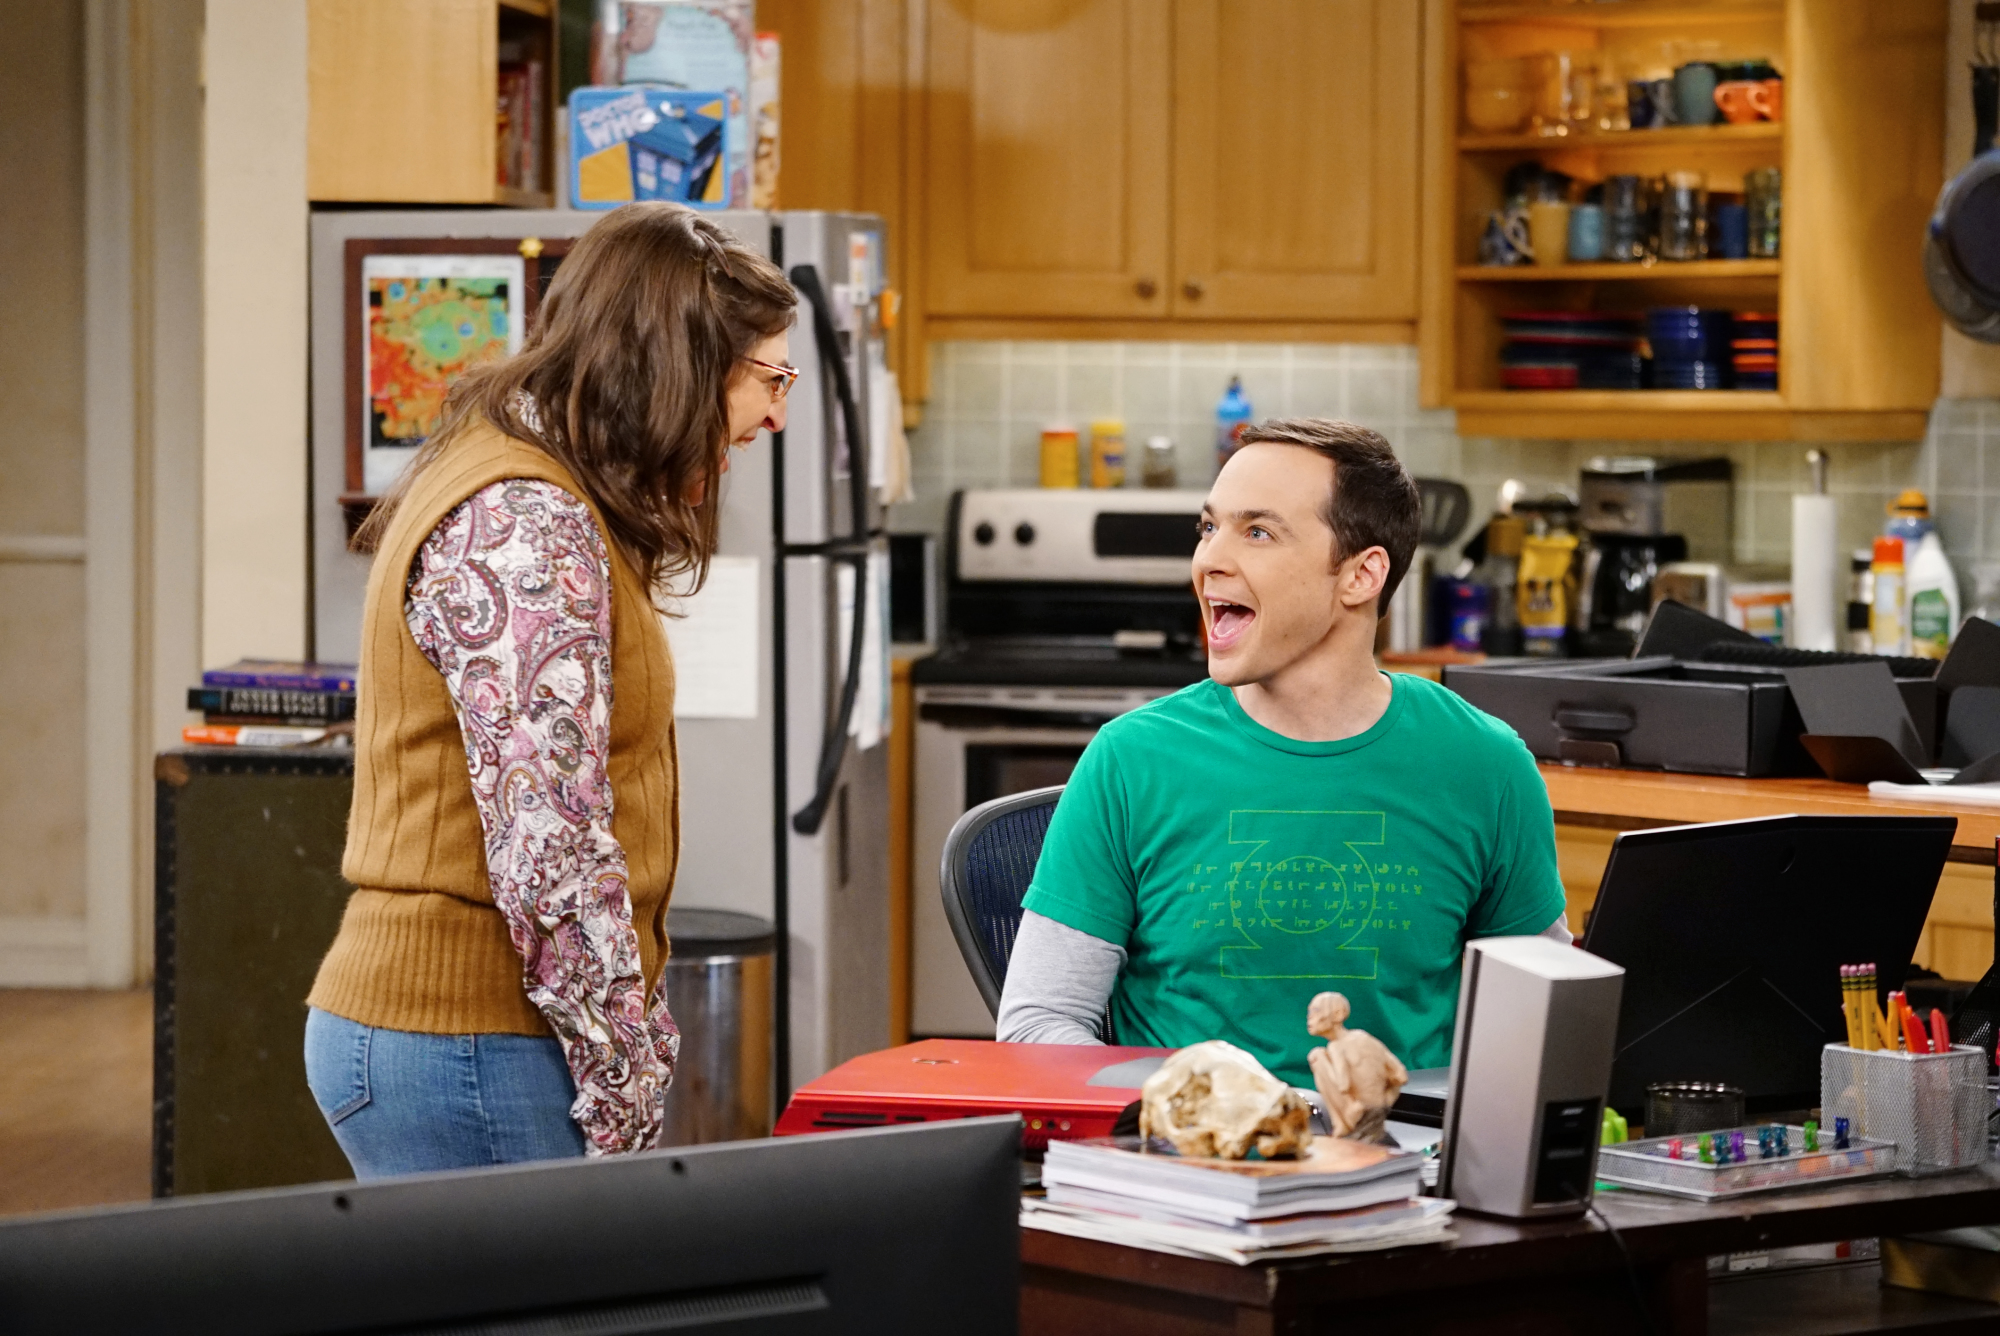 Amy and Sheldon squee over a new laptop with an extremely high-resolution screen.